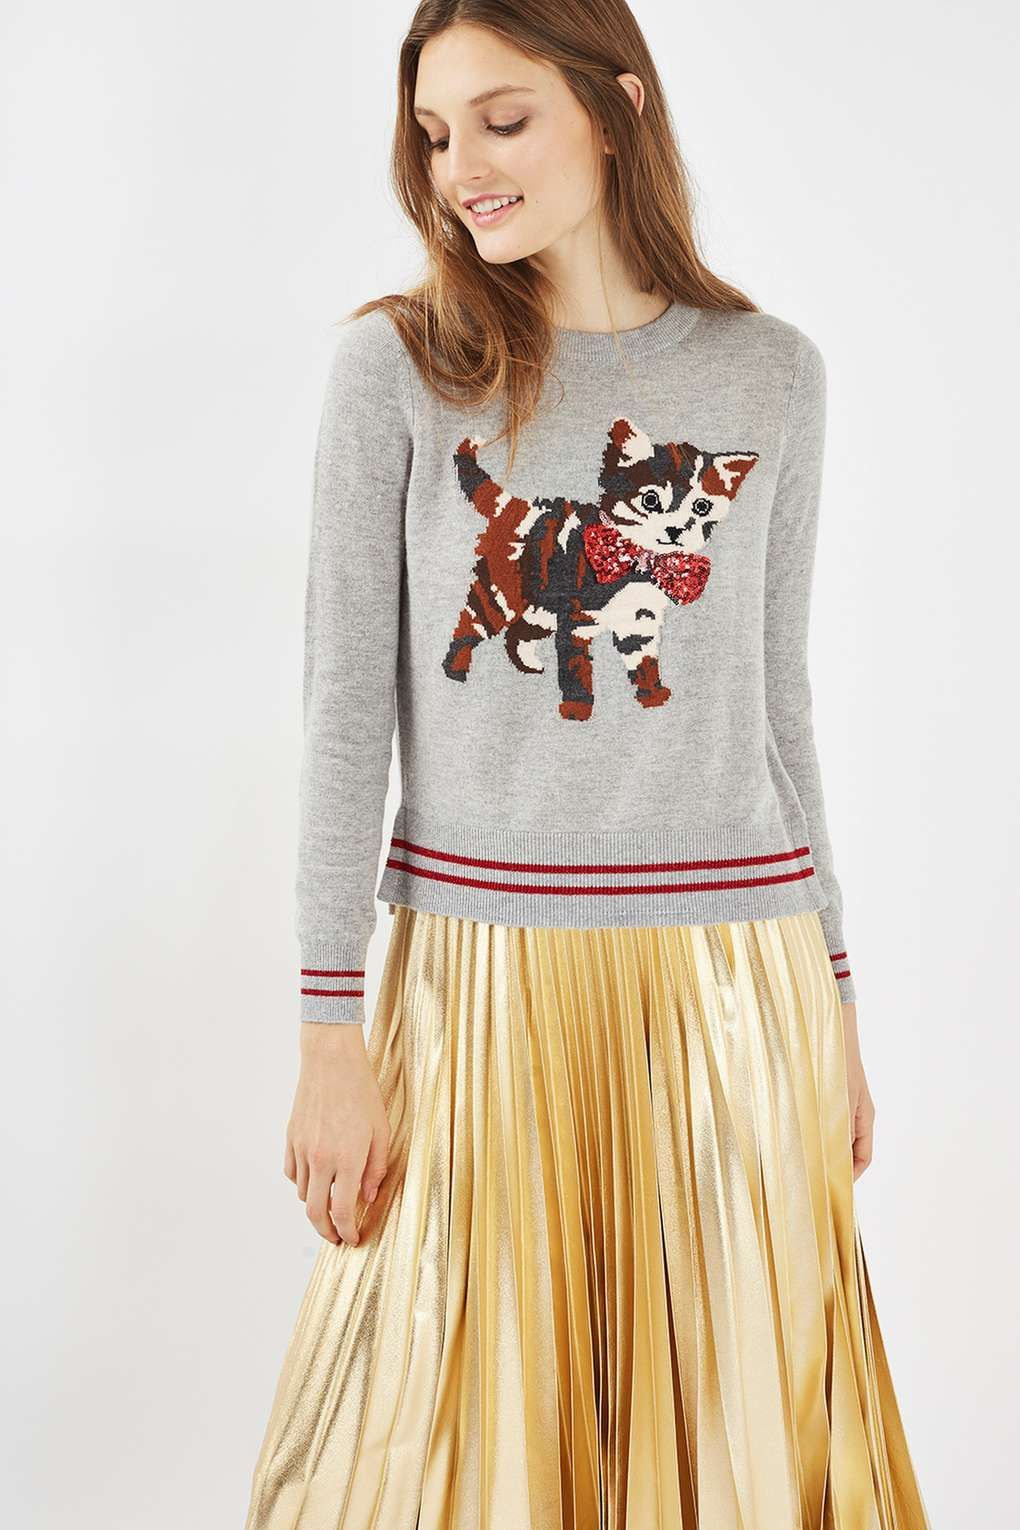 Embellished Cat Motif Jumper - Knitwear - Clothing - Topshop Europe